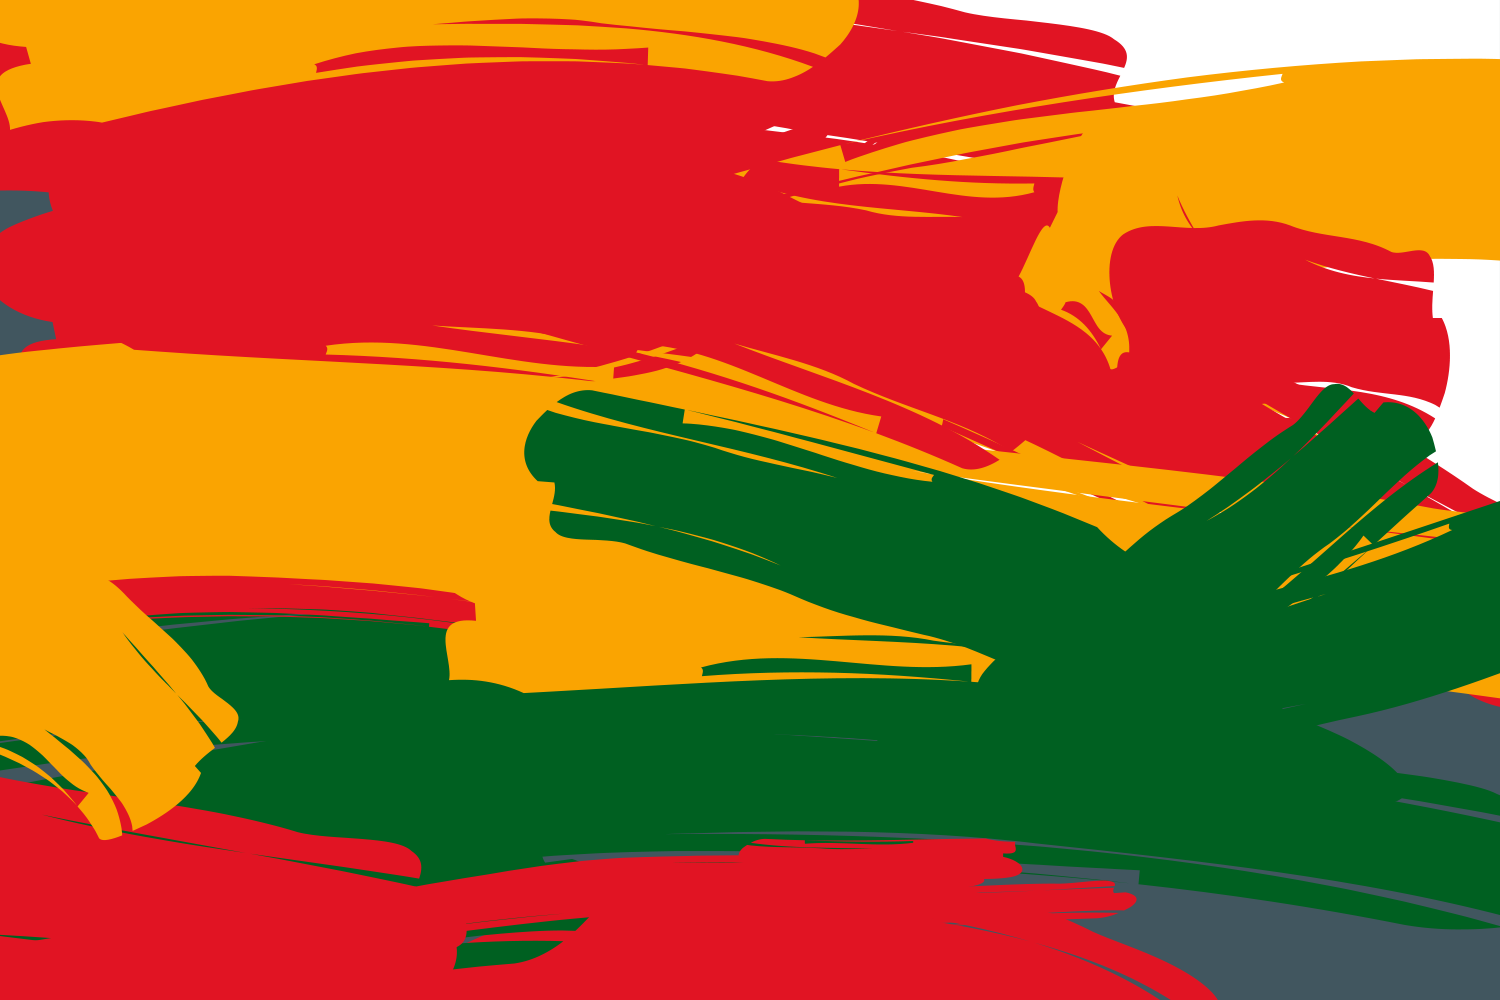 colorful red, yellow, and green banner representing  Black History Month